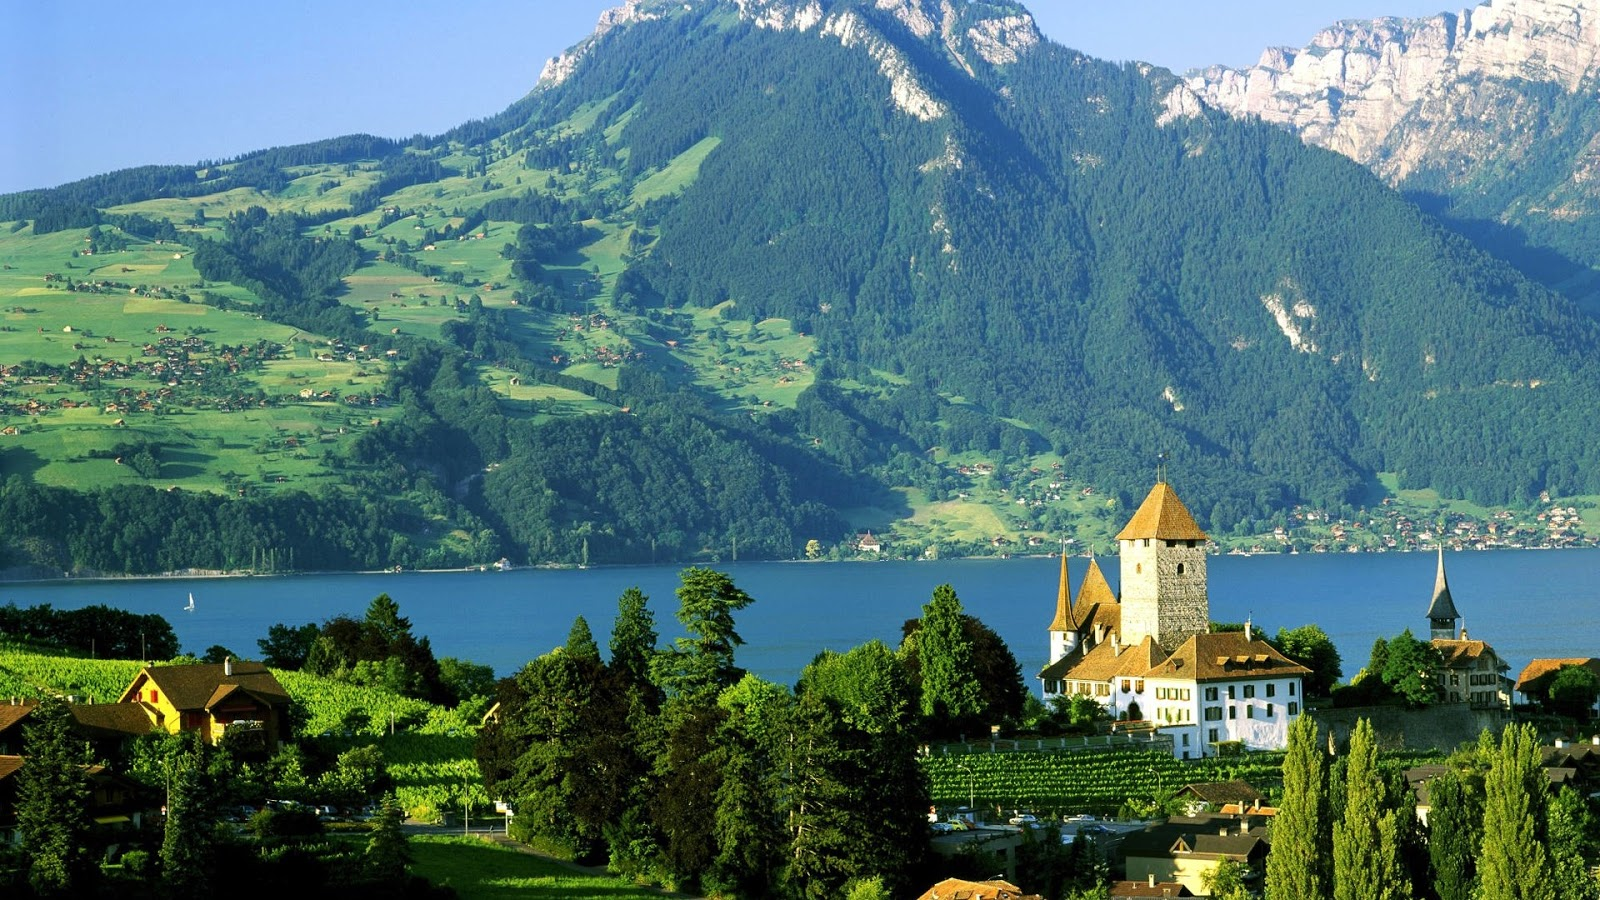 http://3.bp.blogspot.com/-cdXKjBWrsfM/UHdWHcF03pI/AAAAAAAAB68/AOW1leEAFxk/s1600/Amazing+Hereby+Castle+in+Switzerland+wallpaper+(1920x1080).jpg